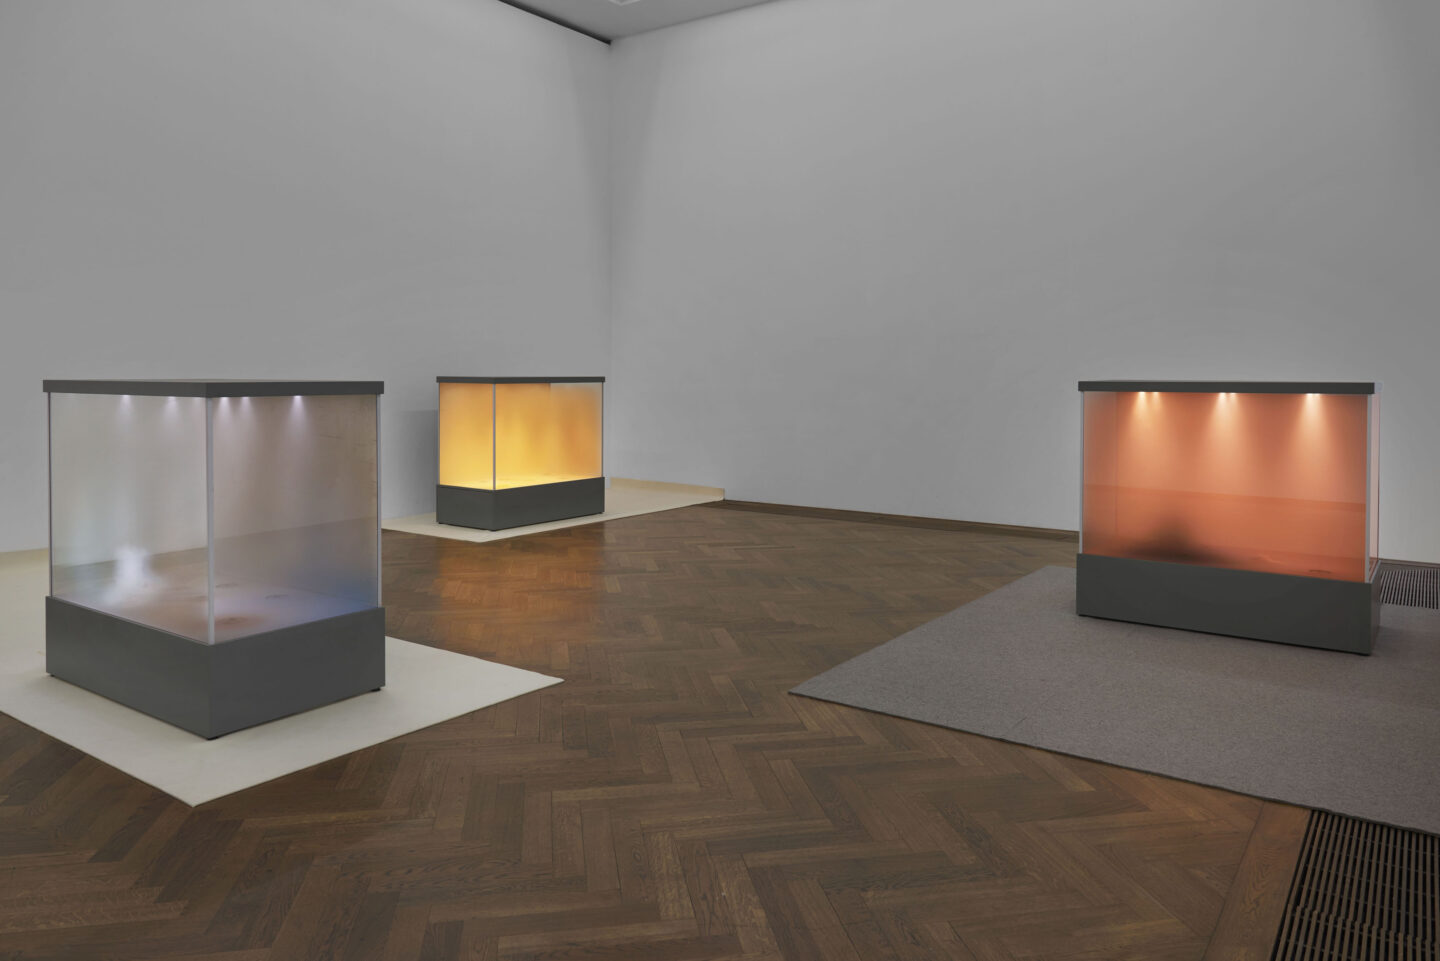 Exhibition View Dora Budor Soloshow «I am Gong; view on Origin III (Snow Storm), Origin I (A Stag Drinking), Origin II (Burning of the Houses), all 2019» at Kunsthalle Basel / Photo: Philipp Hänger / Courtesy: the artist